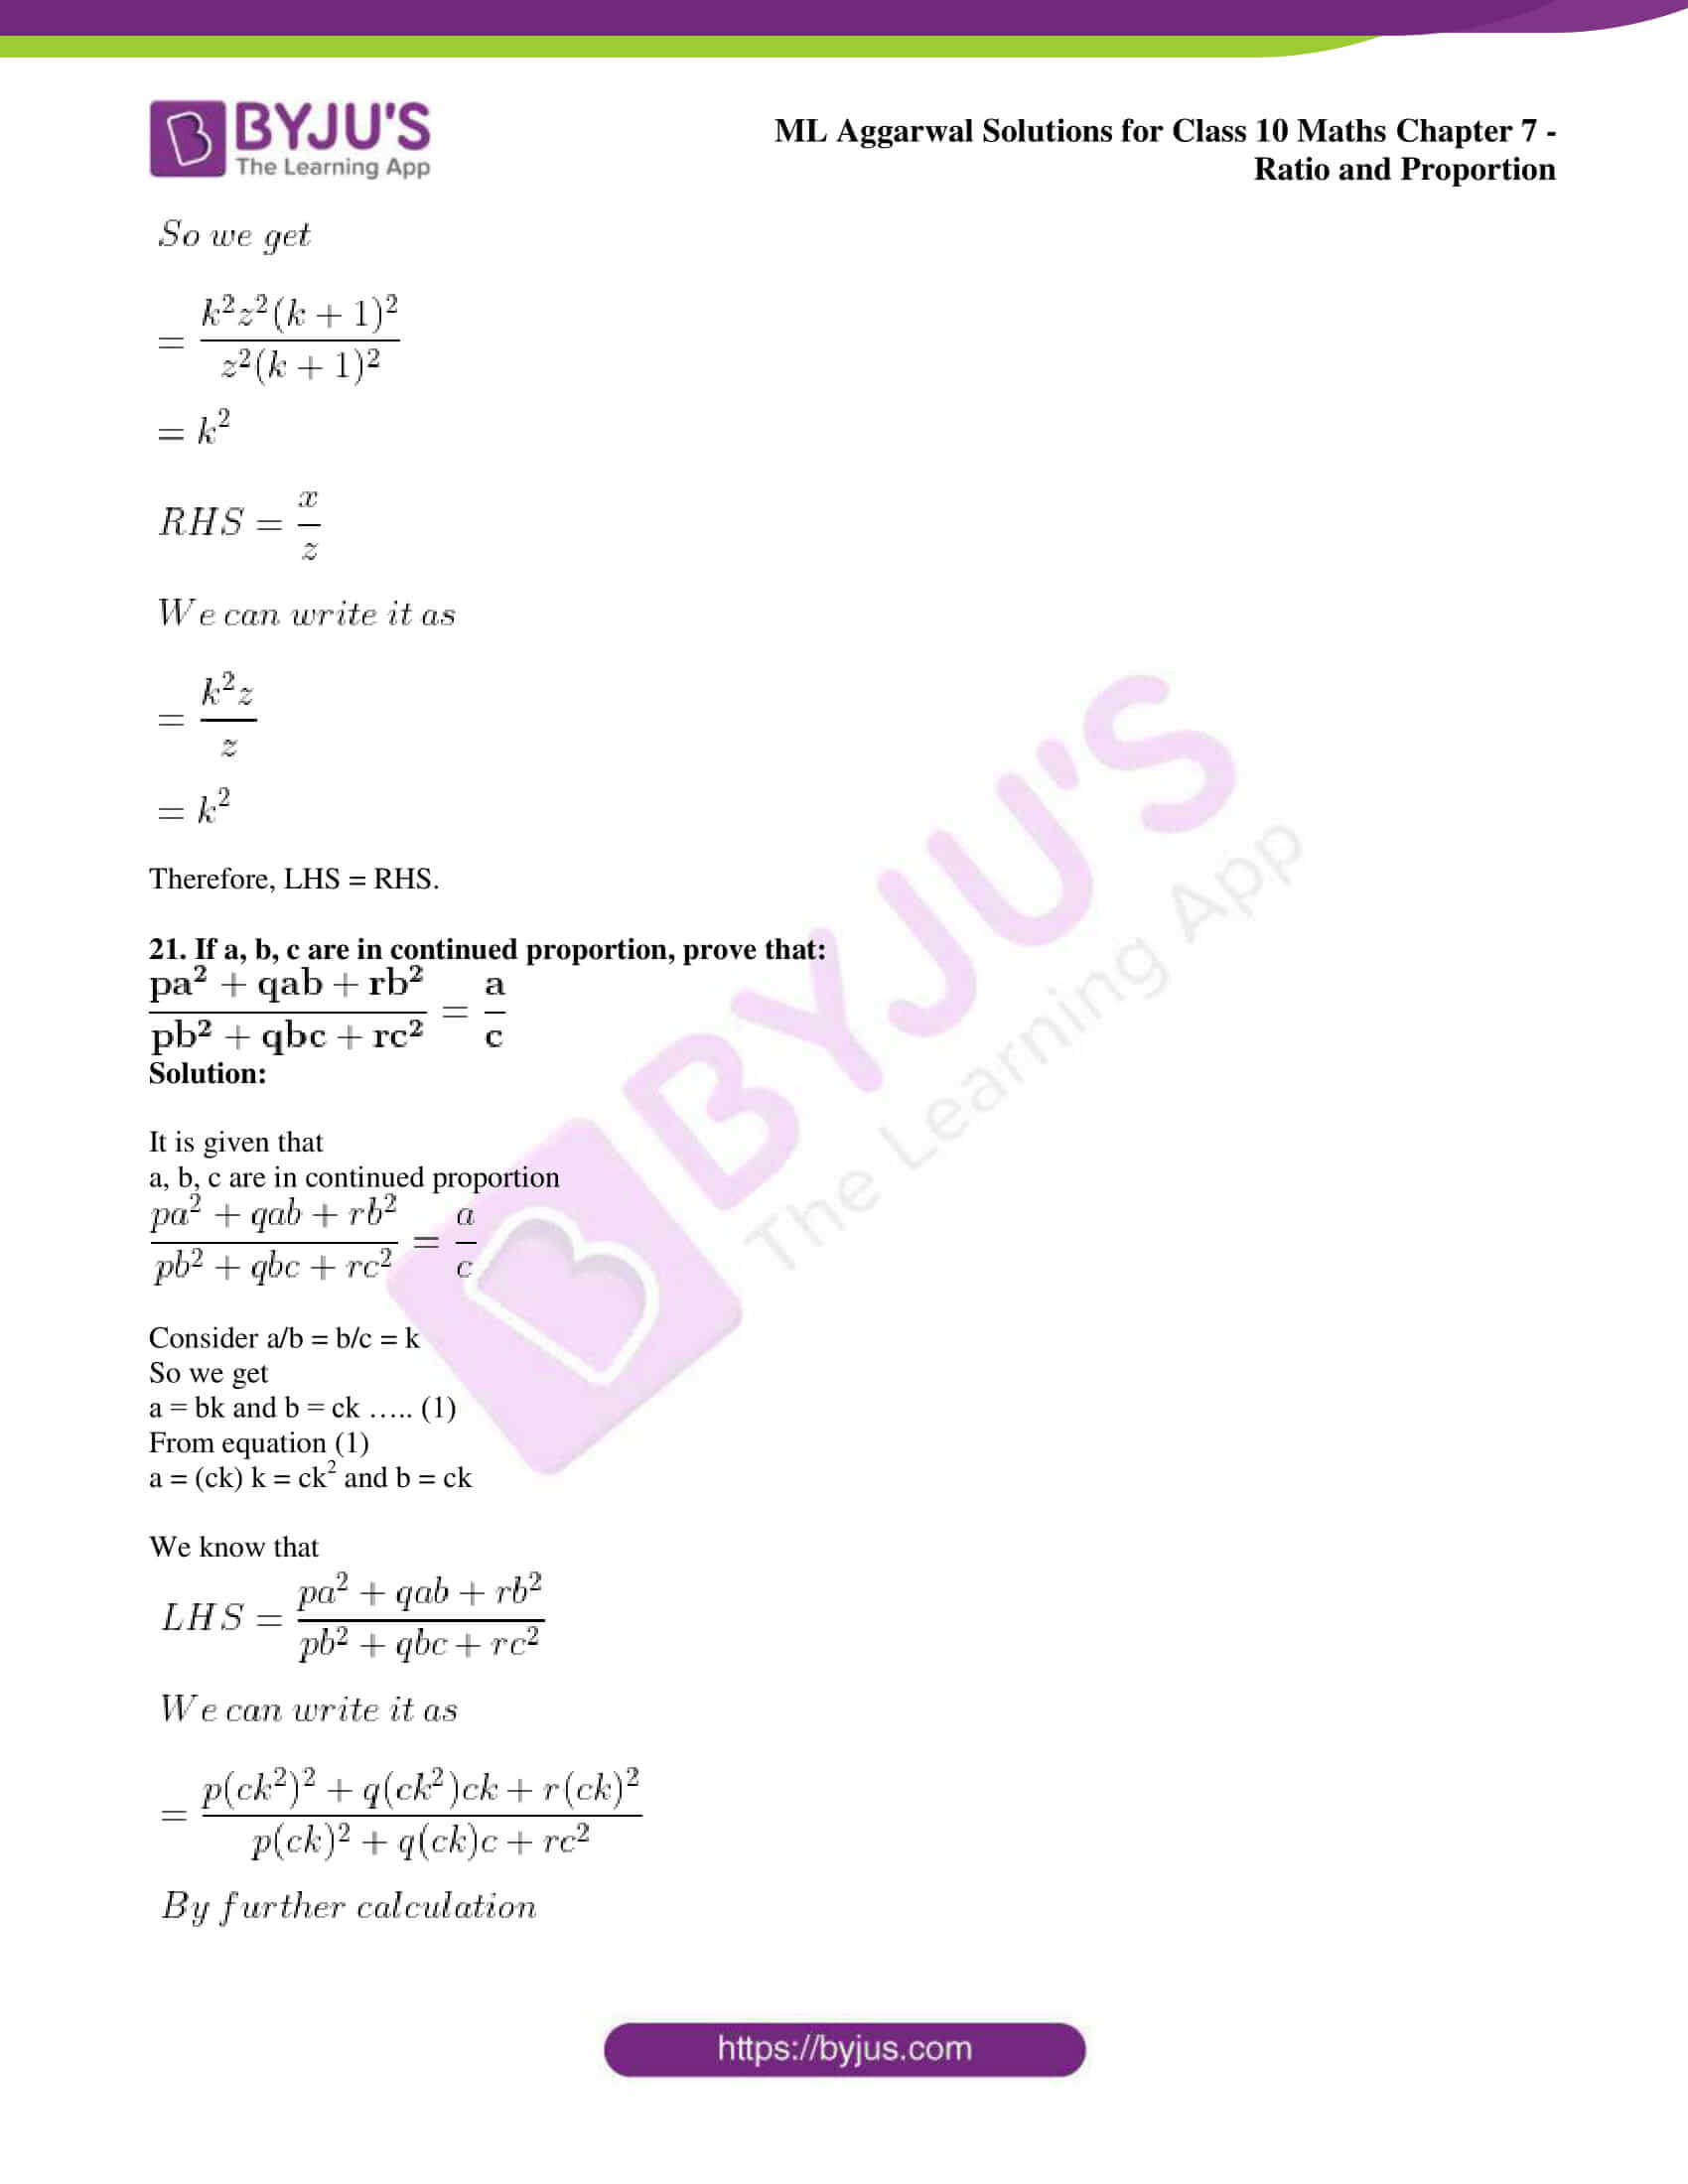 ml aggarwal solutions for class 10 maths chapter 7 35